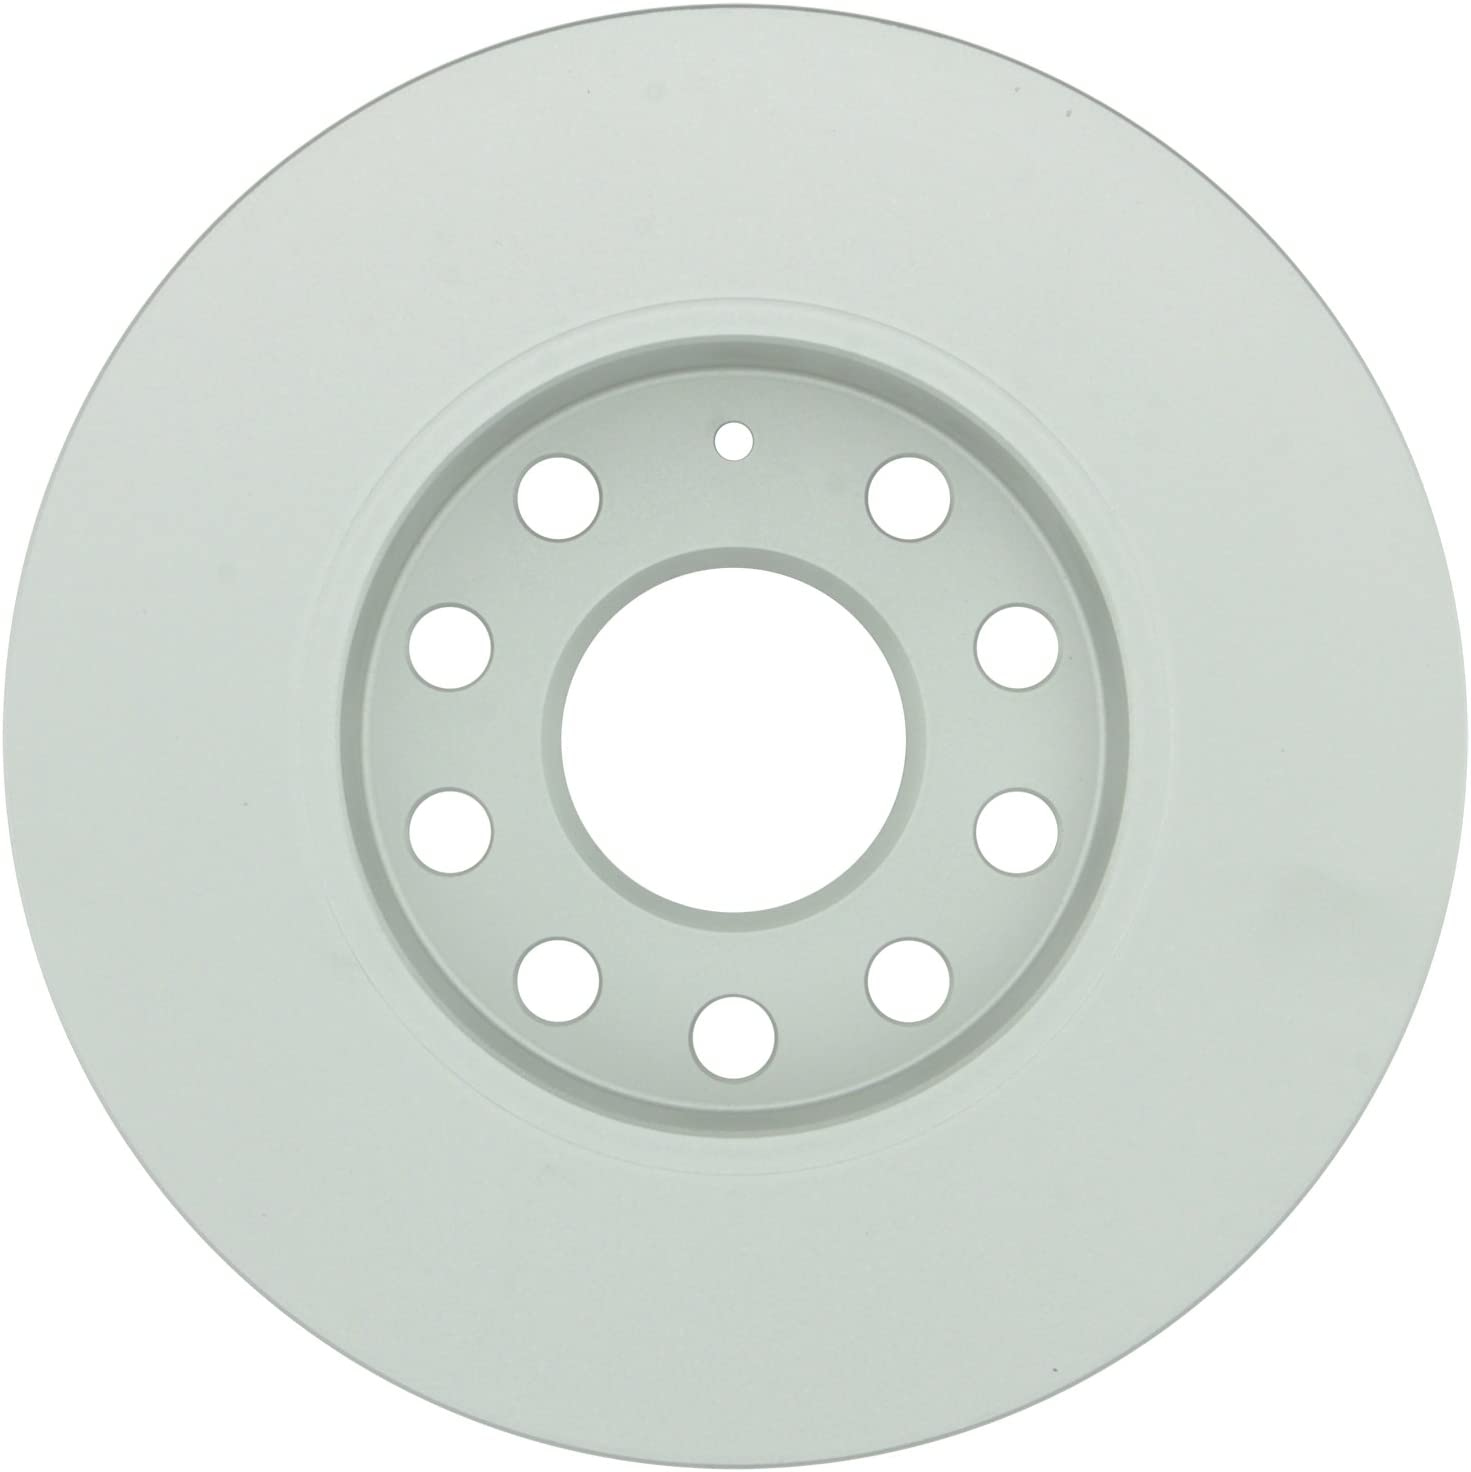 2010 10 VW Jetta A5 w// 288mm Diameter Front Rotors /& AJ OR 1K as The 7th and 8th Digit Of VIN# Fits Max Brakes Front Carbon Ceramic Performance Disc Brake Pads KT050551